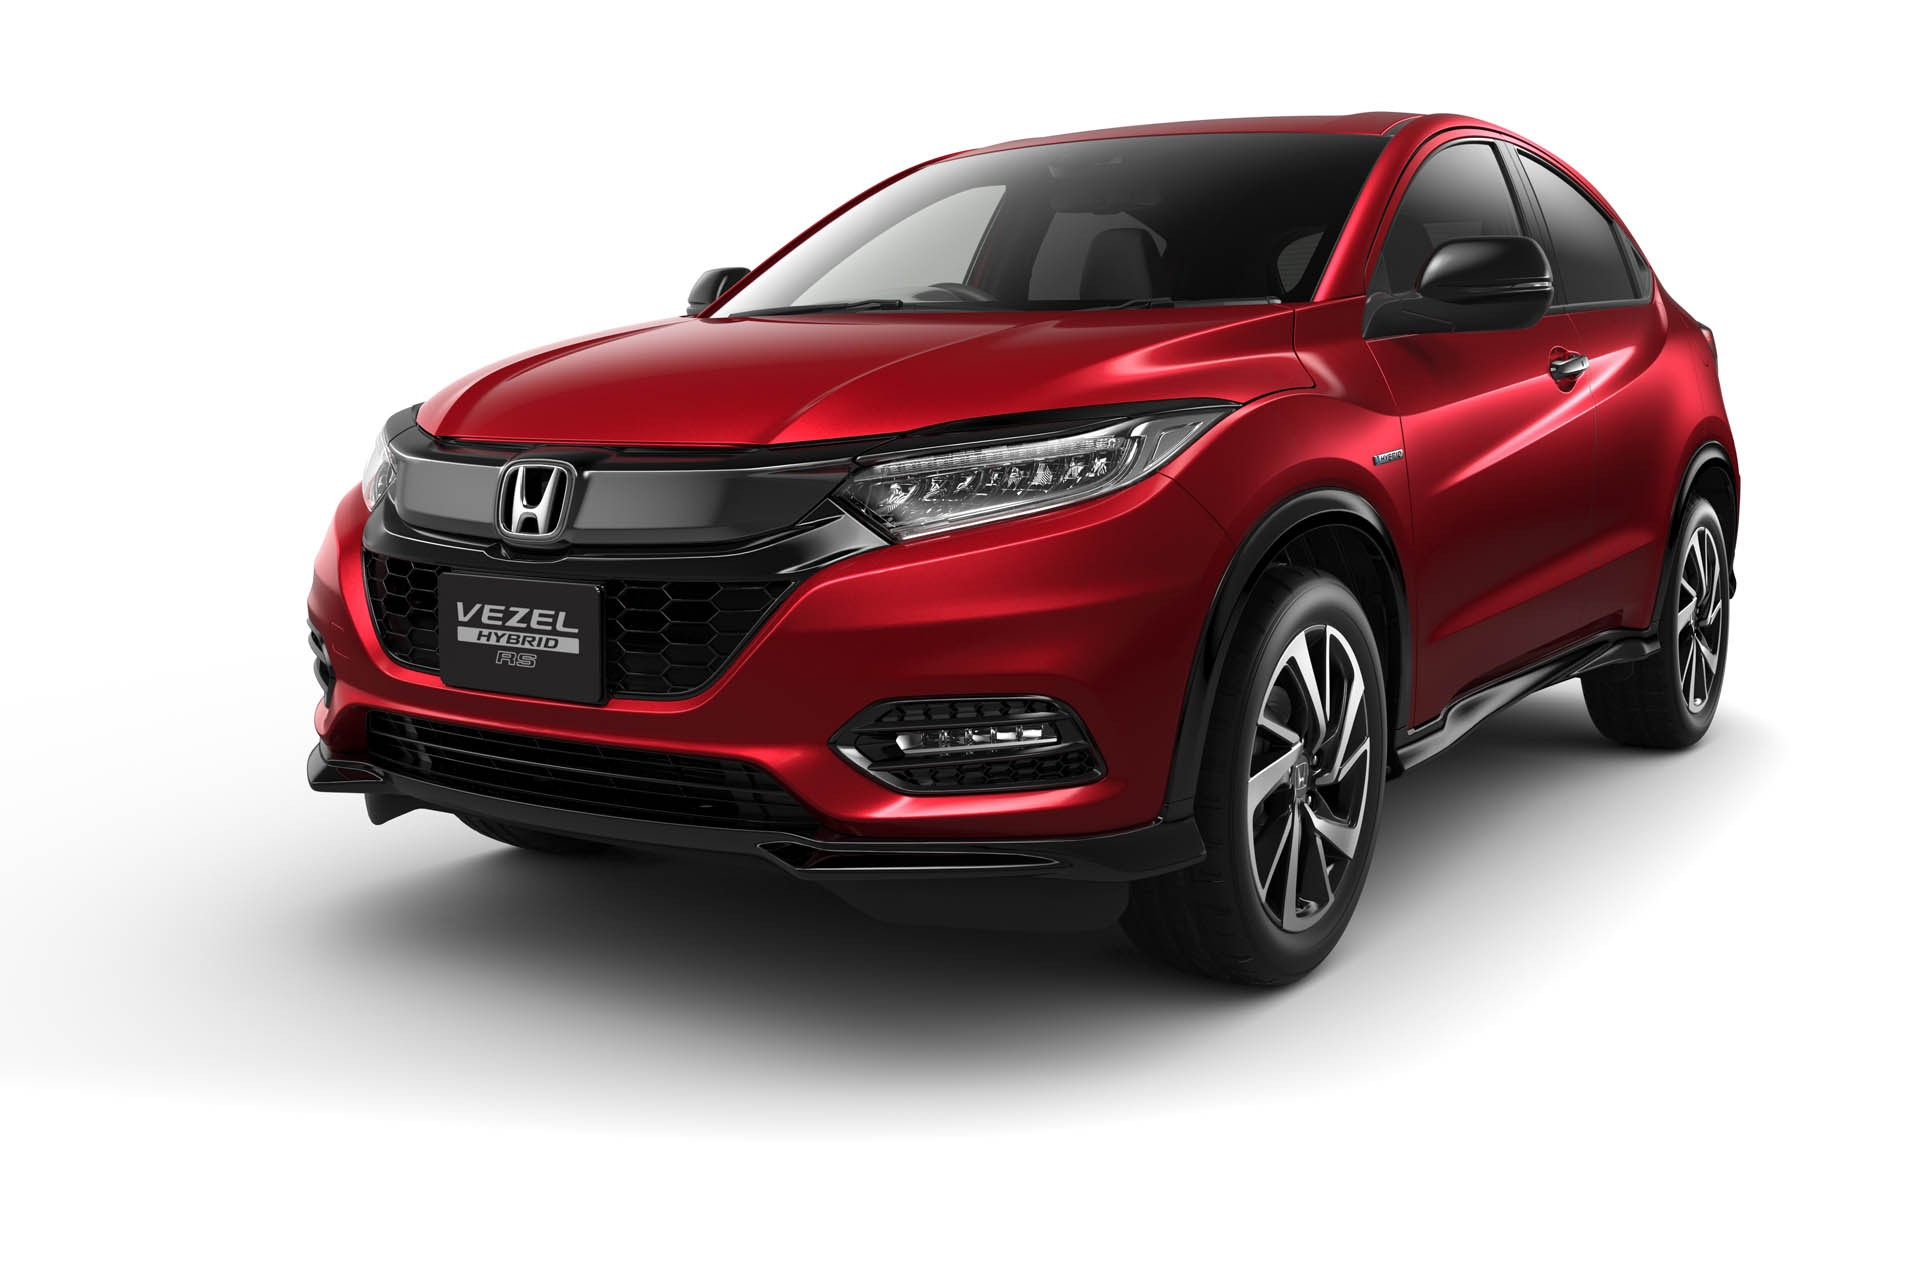 2019 honda hr v facelift launched in japan as new vezel autoevolution. Black Bedroom Furniture Sets. Home Design Ideas